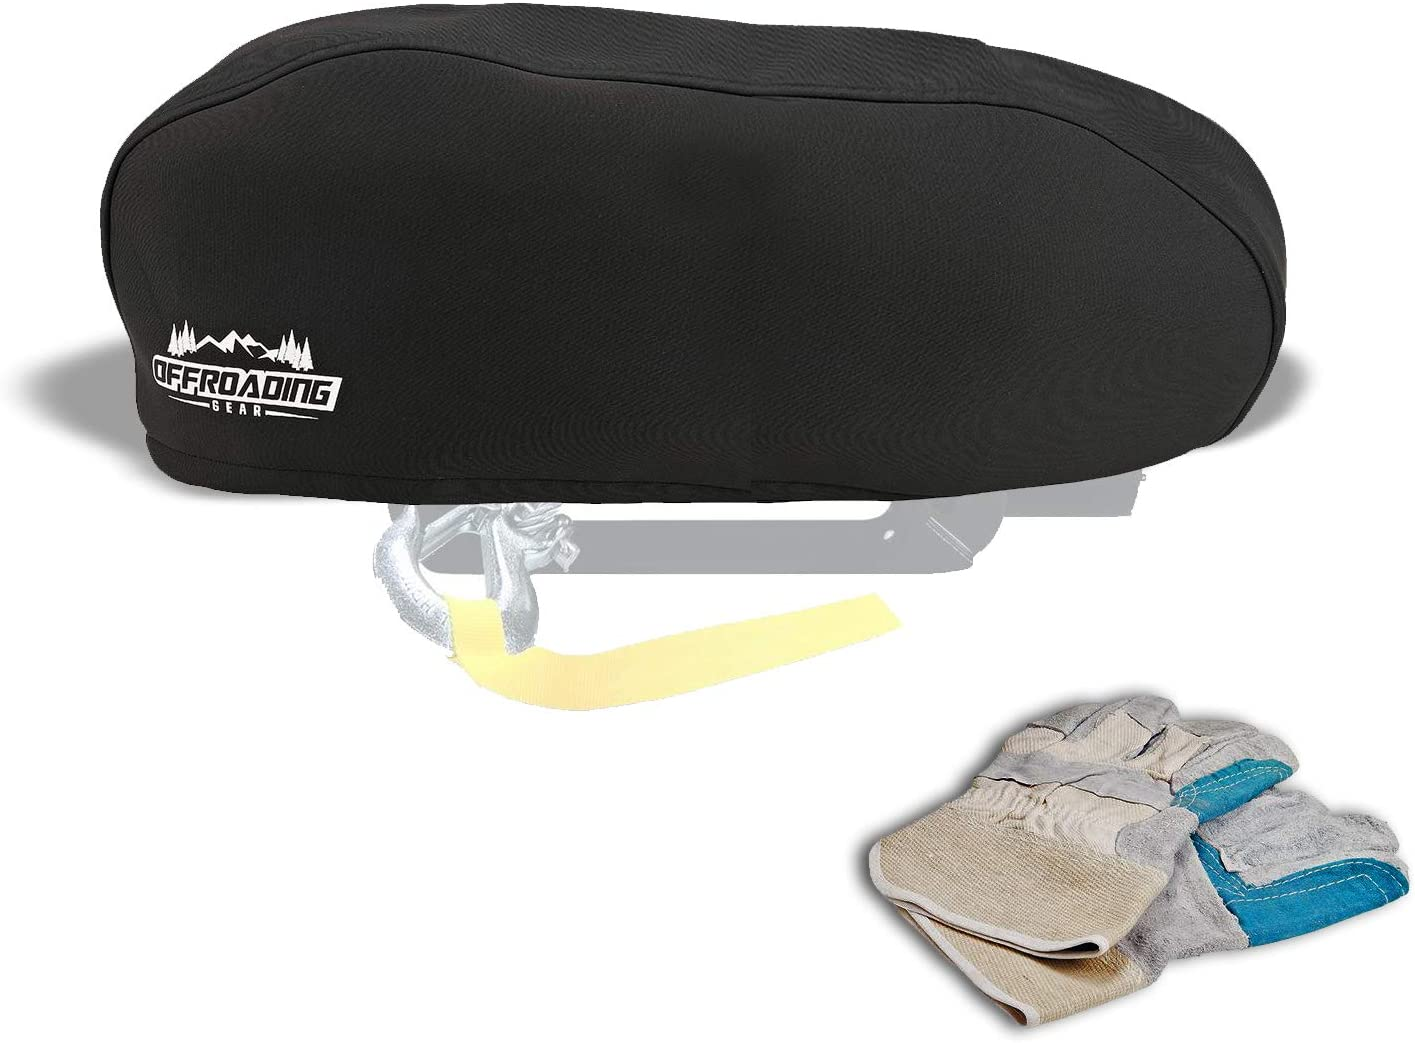 Winch SEAL limited product Cover 8000-10000 lbs Winches Off-Road Black Neoprene for Rare